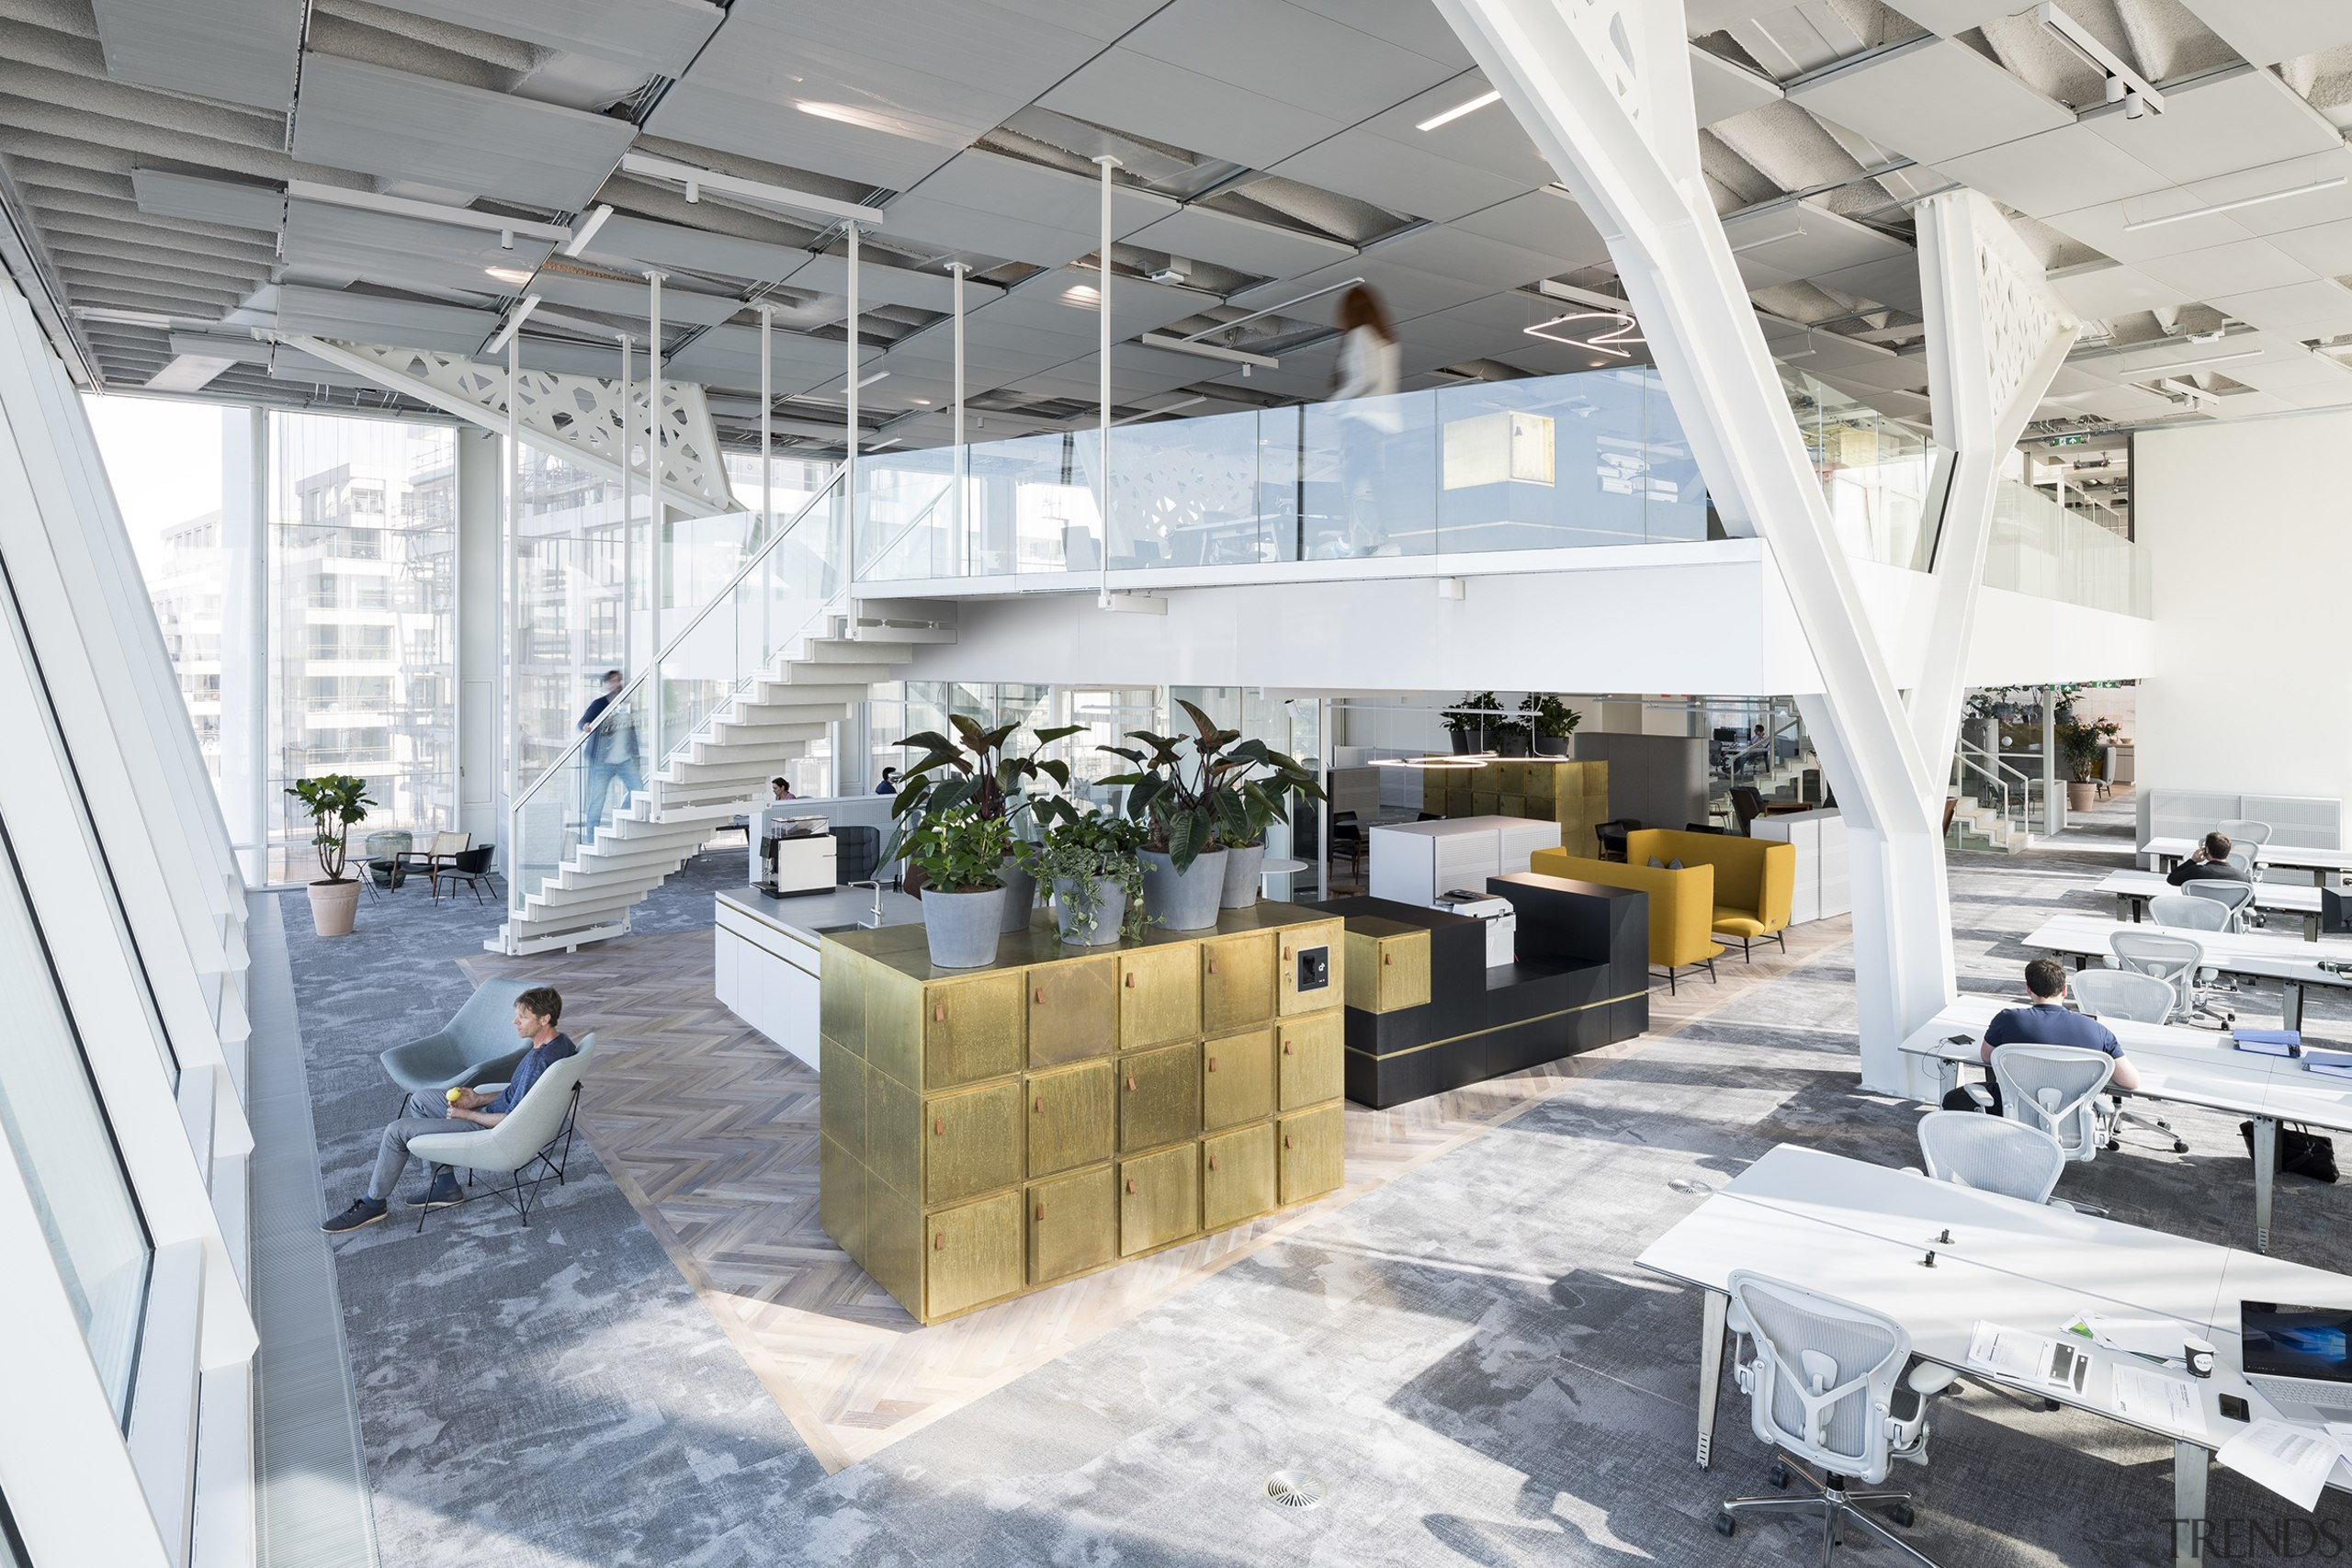 This overview takes in the office workplaces and architecture, building, ceiling, design, factory, floor, flooring, house, interior design, office, property, real estate, room, white, gray